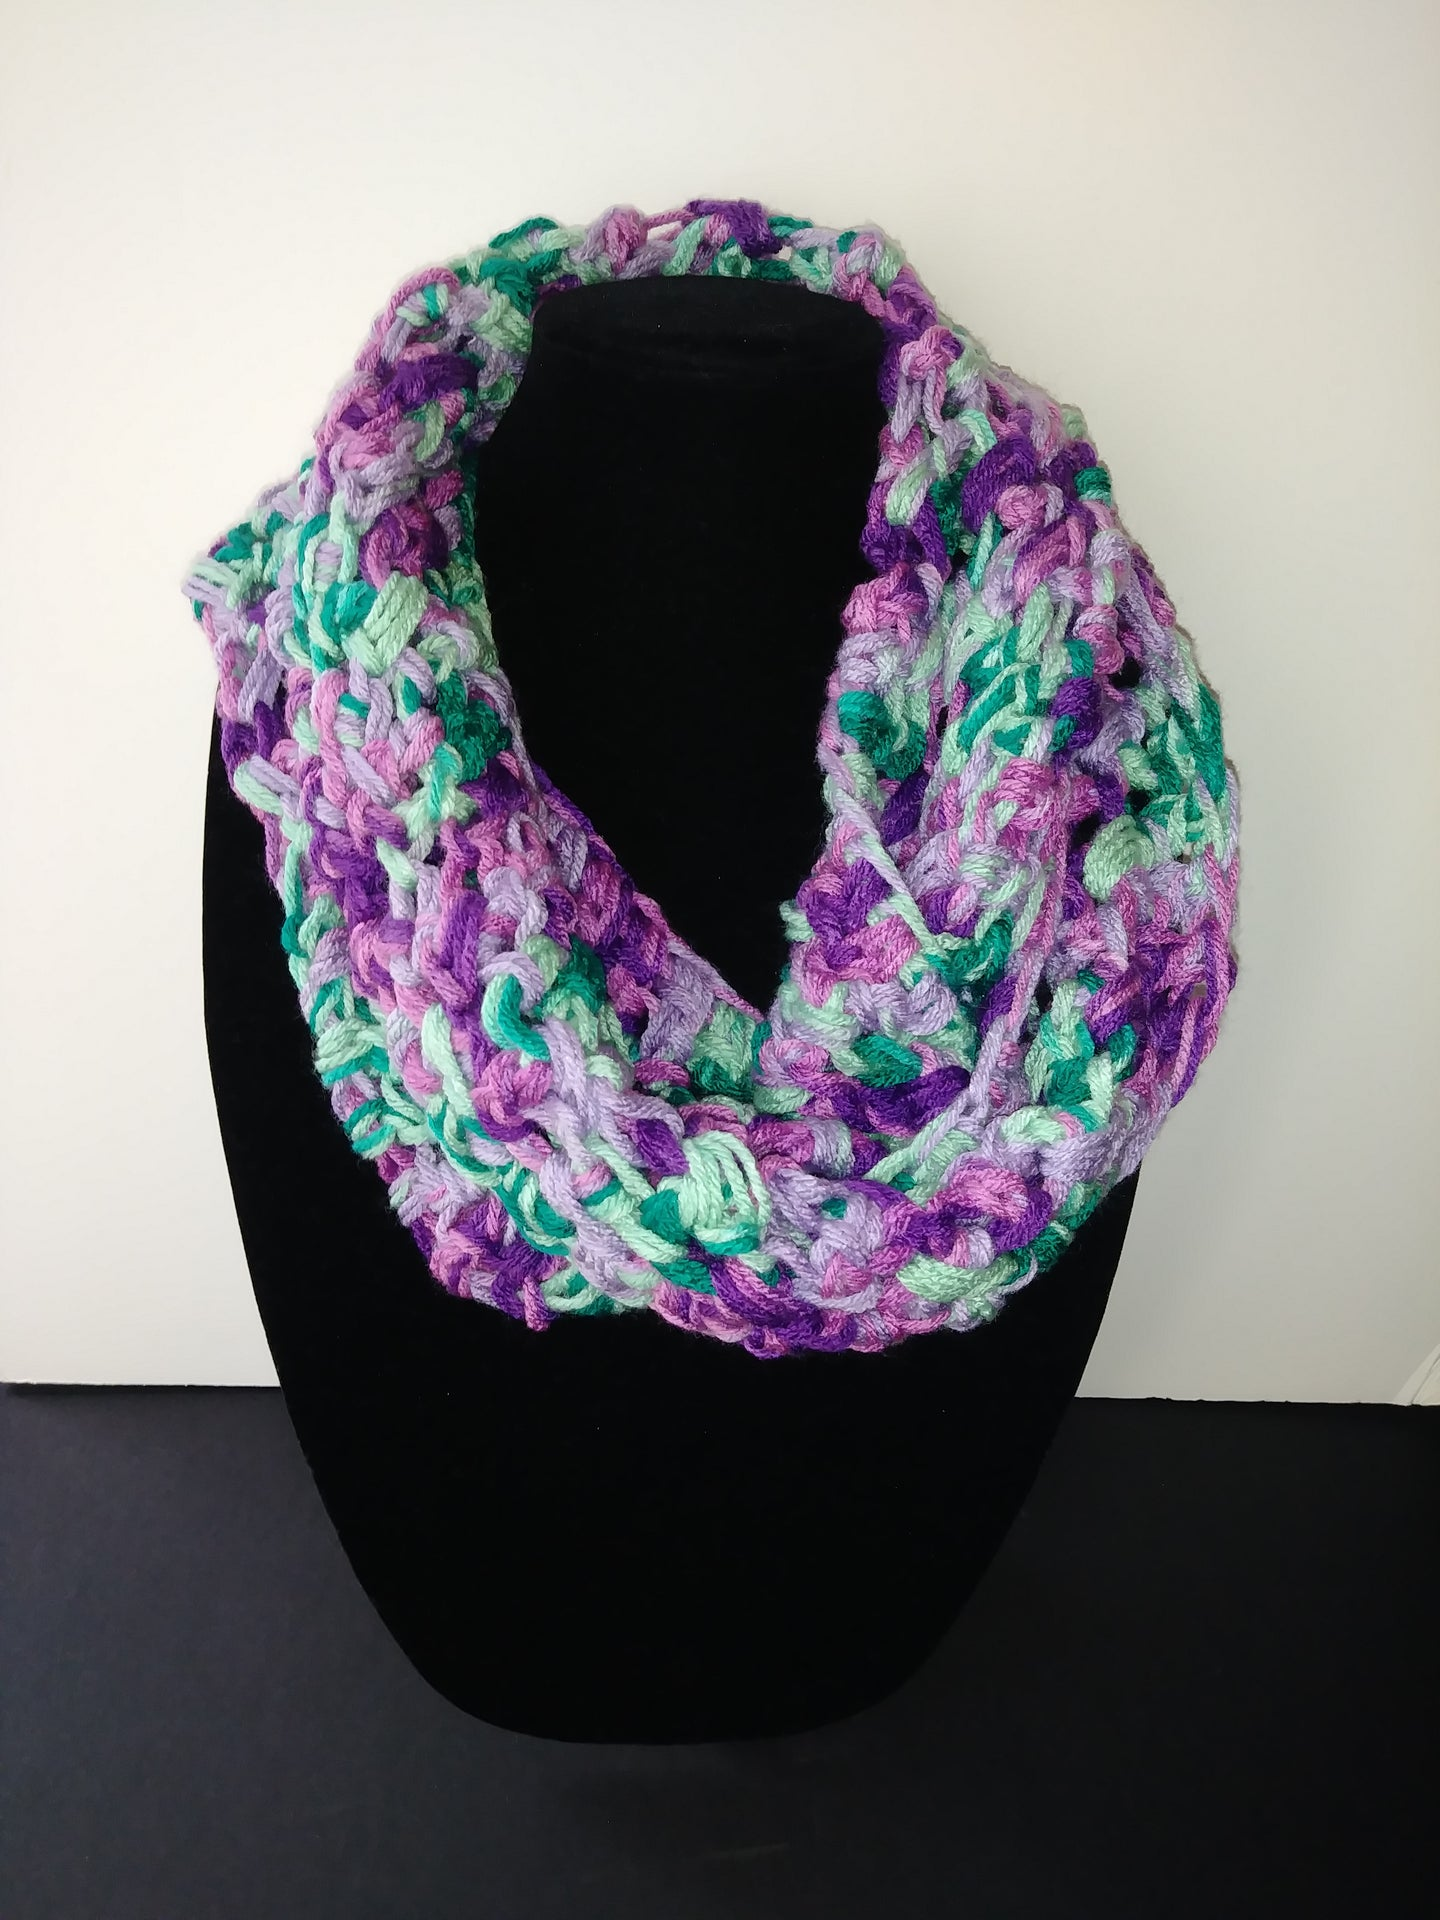 Fantasy Pink Purples & Green Teal Winter Infinity Scarf Cowl